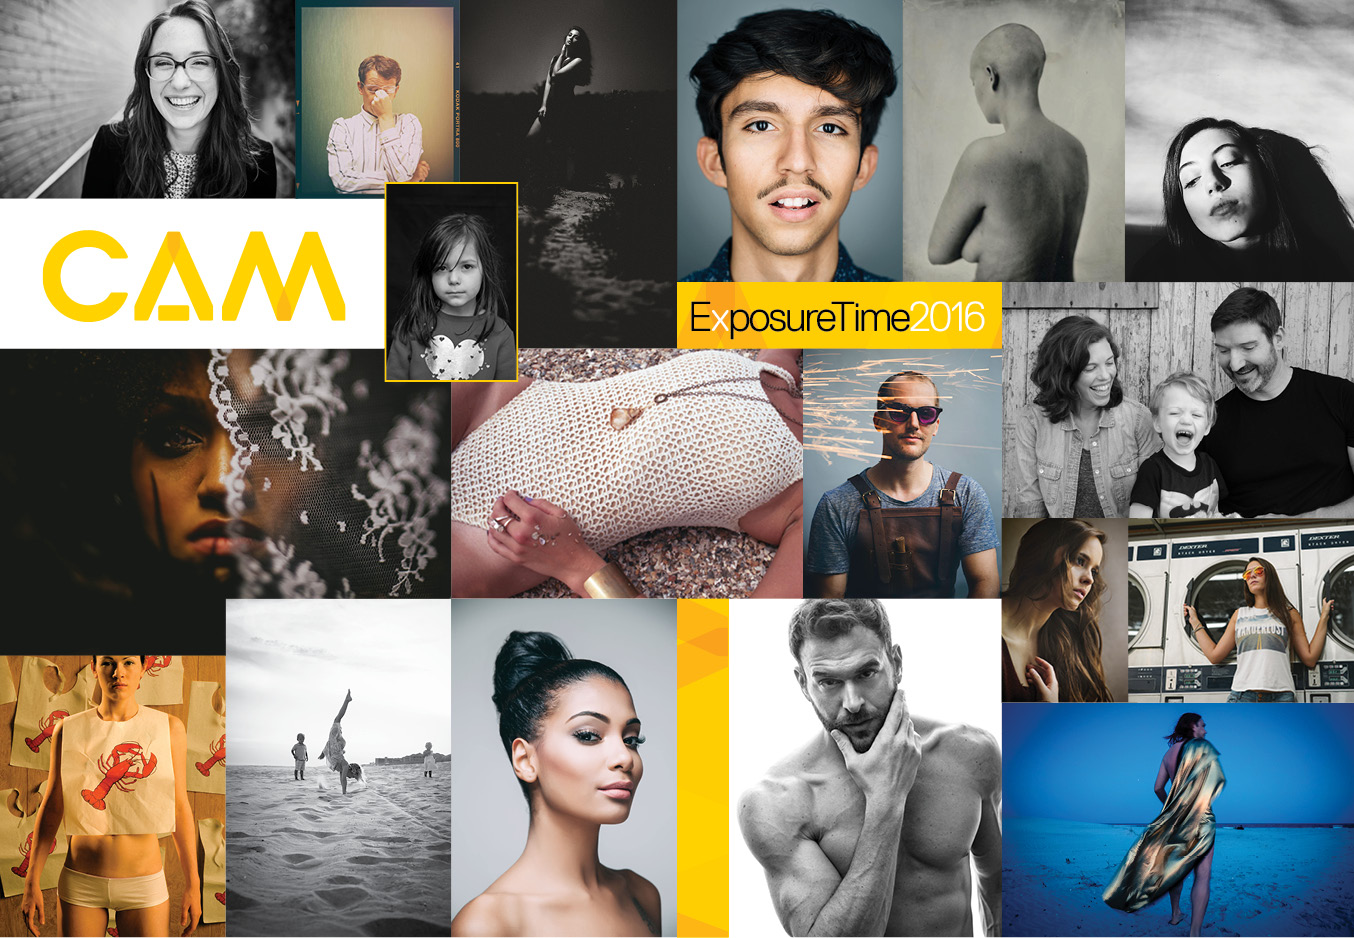 Exposure Time 2016